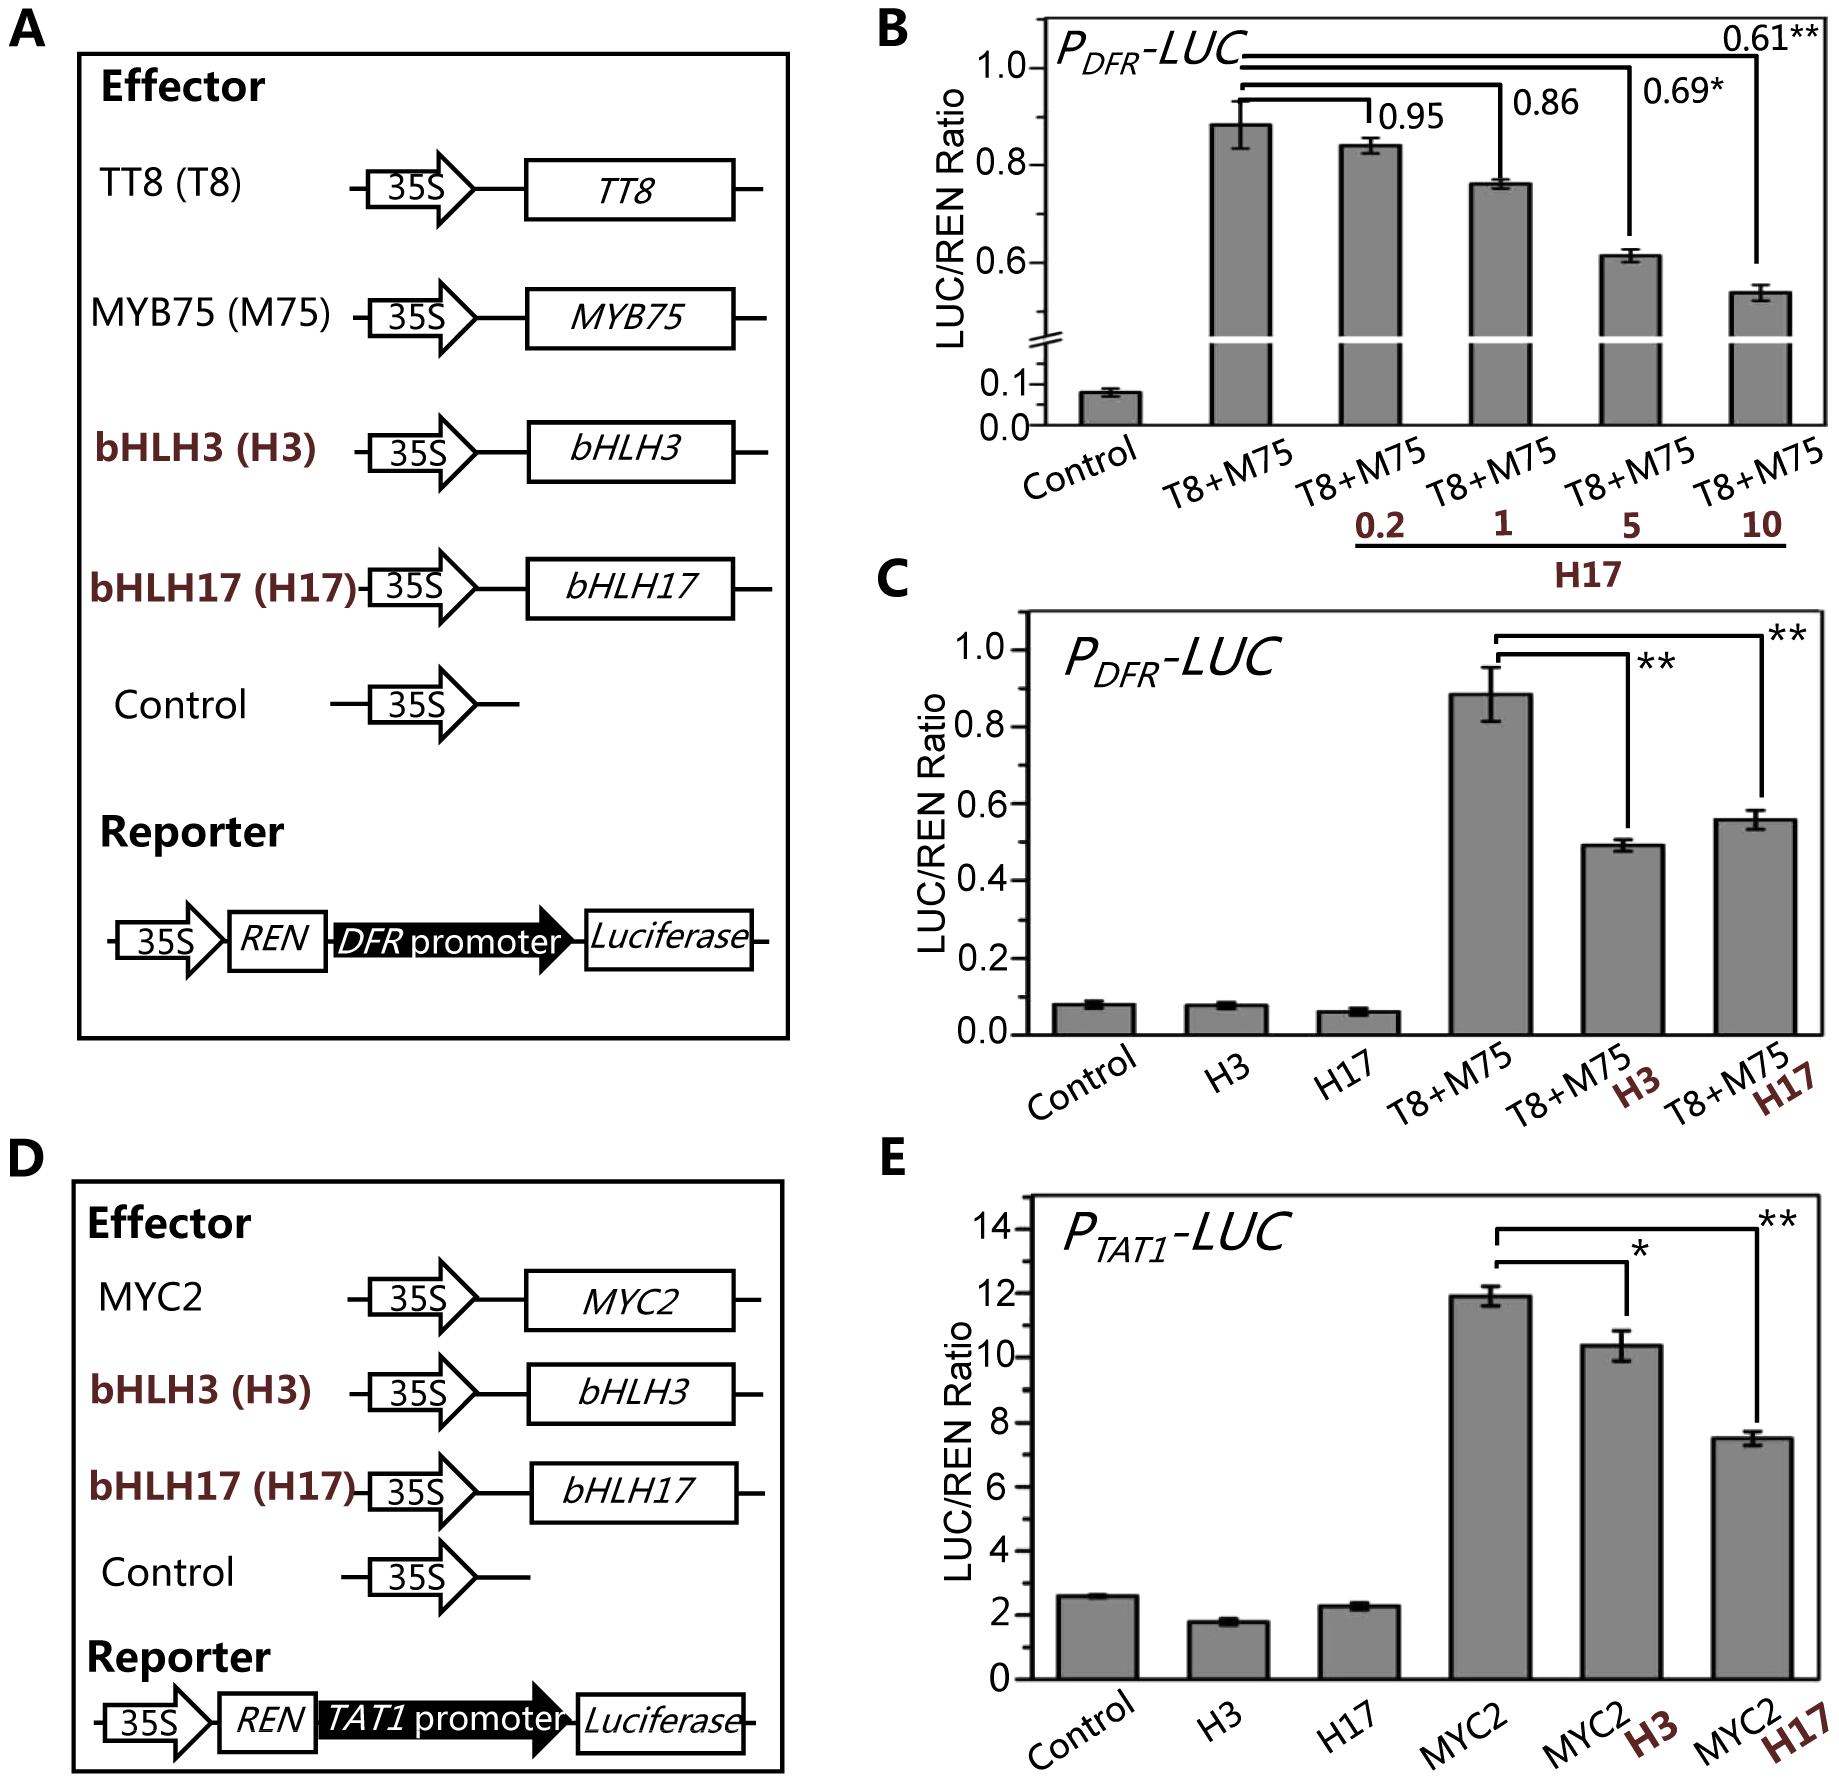 The bHLH3 and bHLH17 antagonize TT8/MYB75 and MYC2 to negatively regulate their downstream target genes.